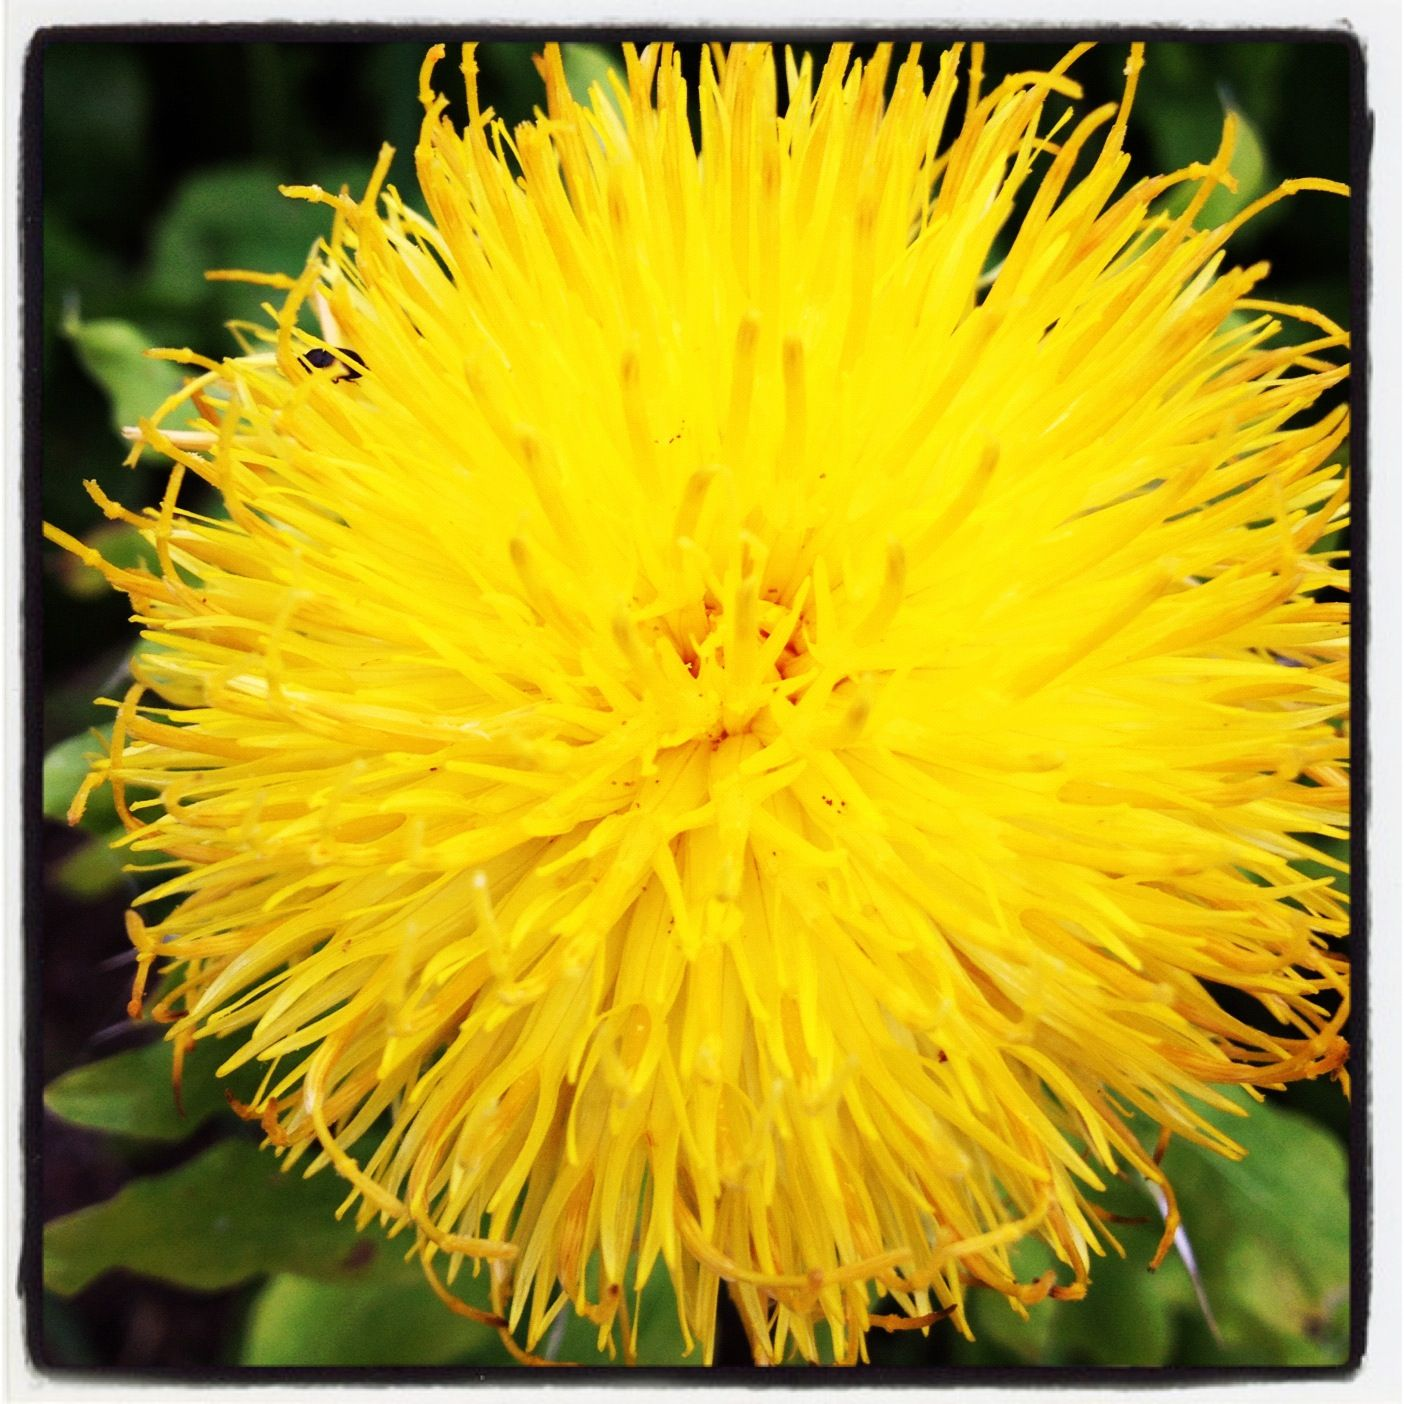 A yellow thing   Flowers   Pinterest   Yellow things and ...